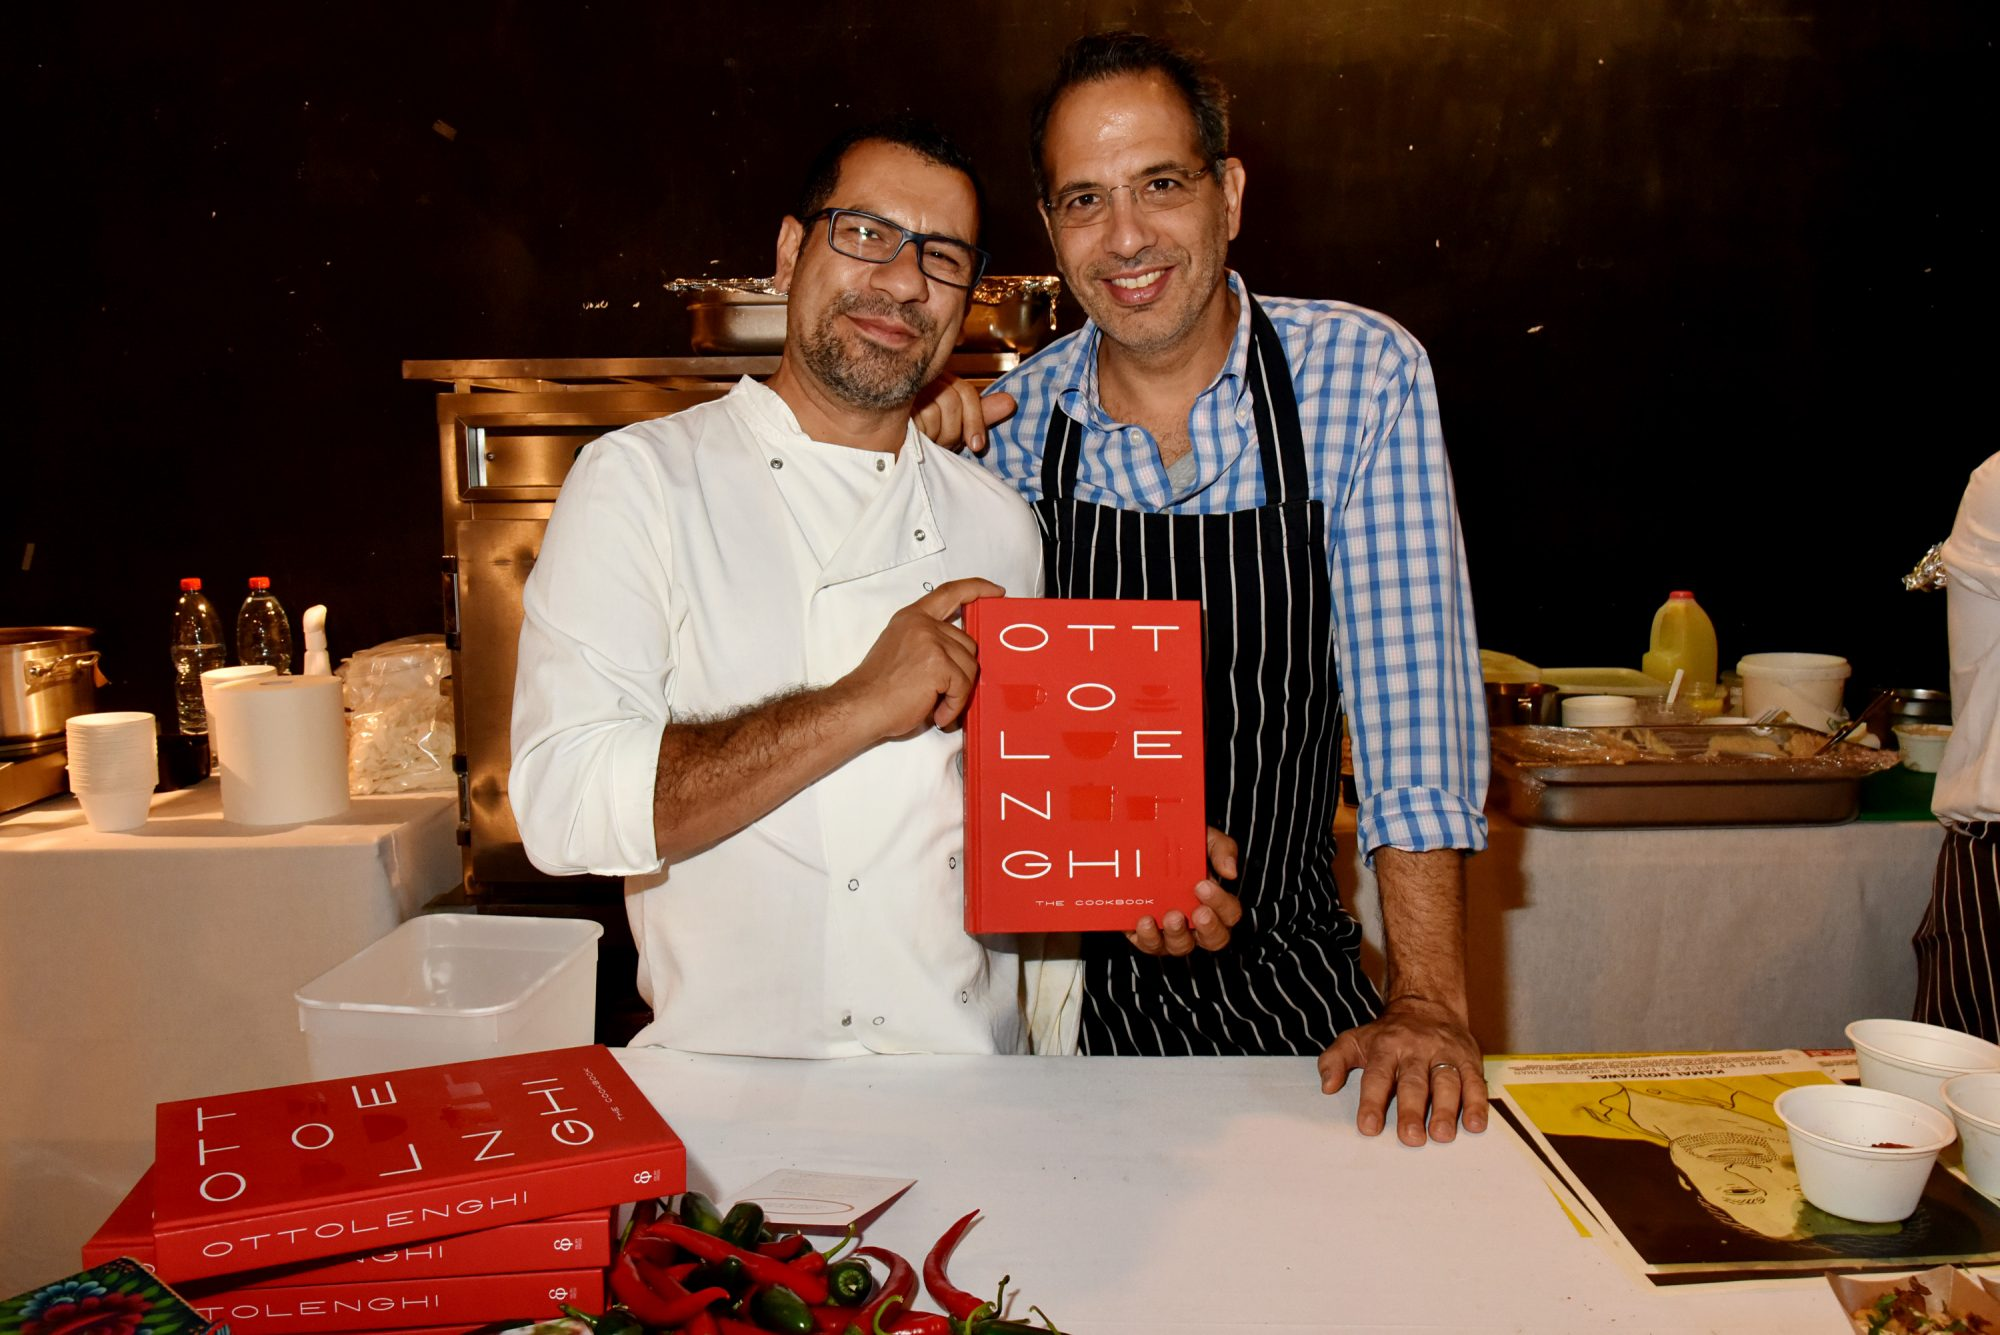 Ottolenghi new cookbook recipes